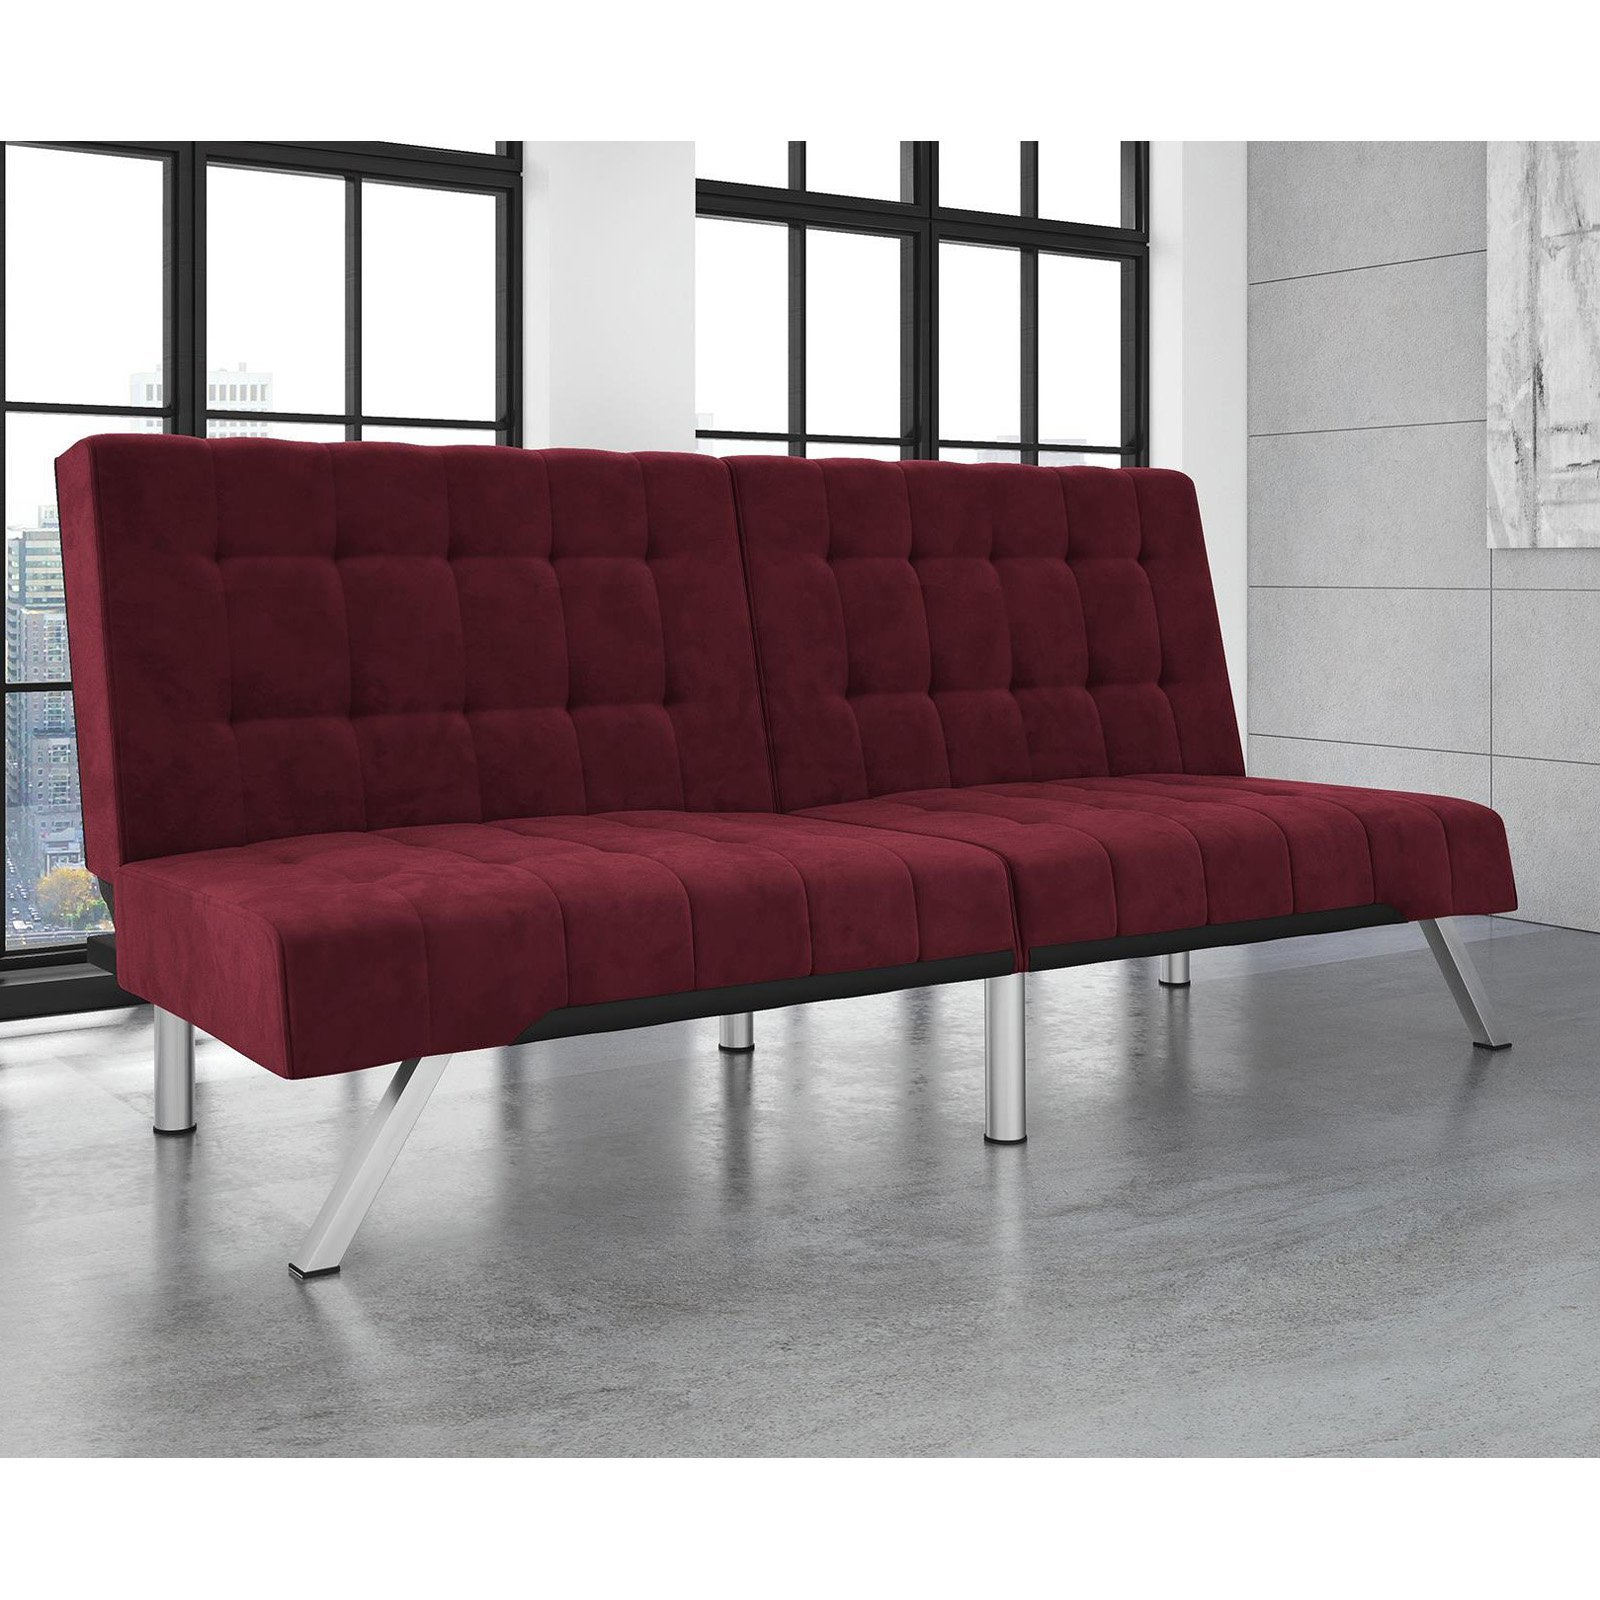 Excellent Convertible Futon, Modern Look and Design, Click-Clack Technology, Converts Easily and Quickly from Sofa to Bed, Chrome Metal Legs, Sturdy Materials + Expert Guide (Burgundy Velvet)